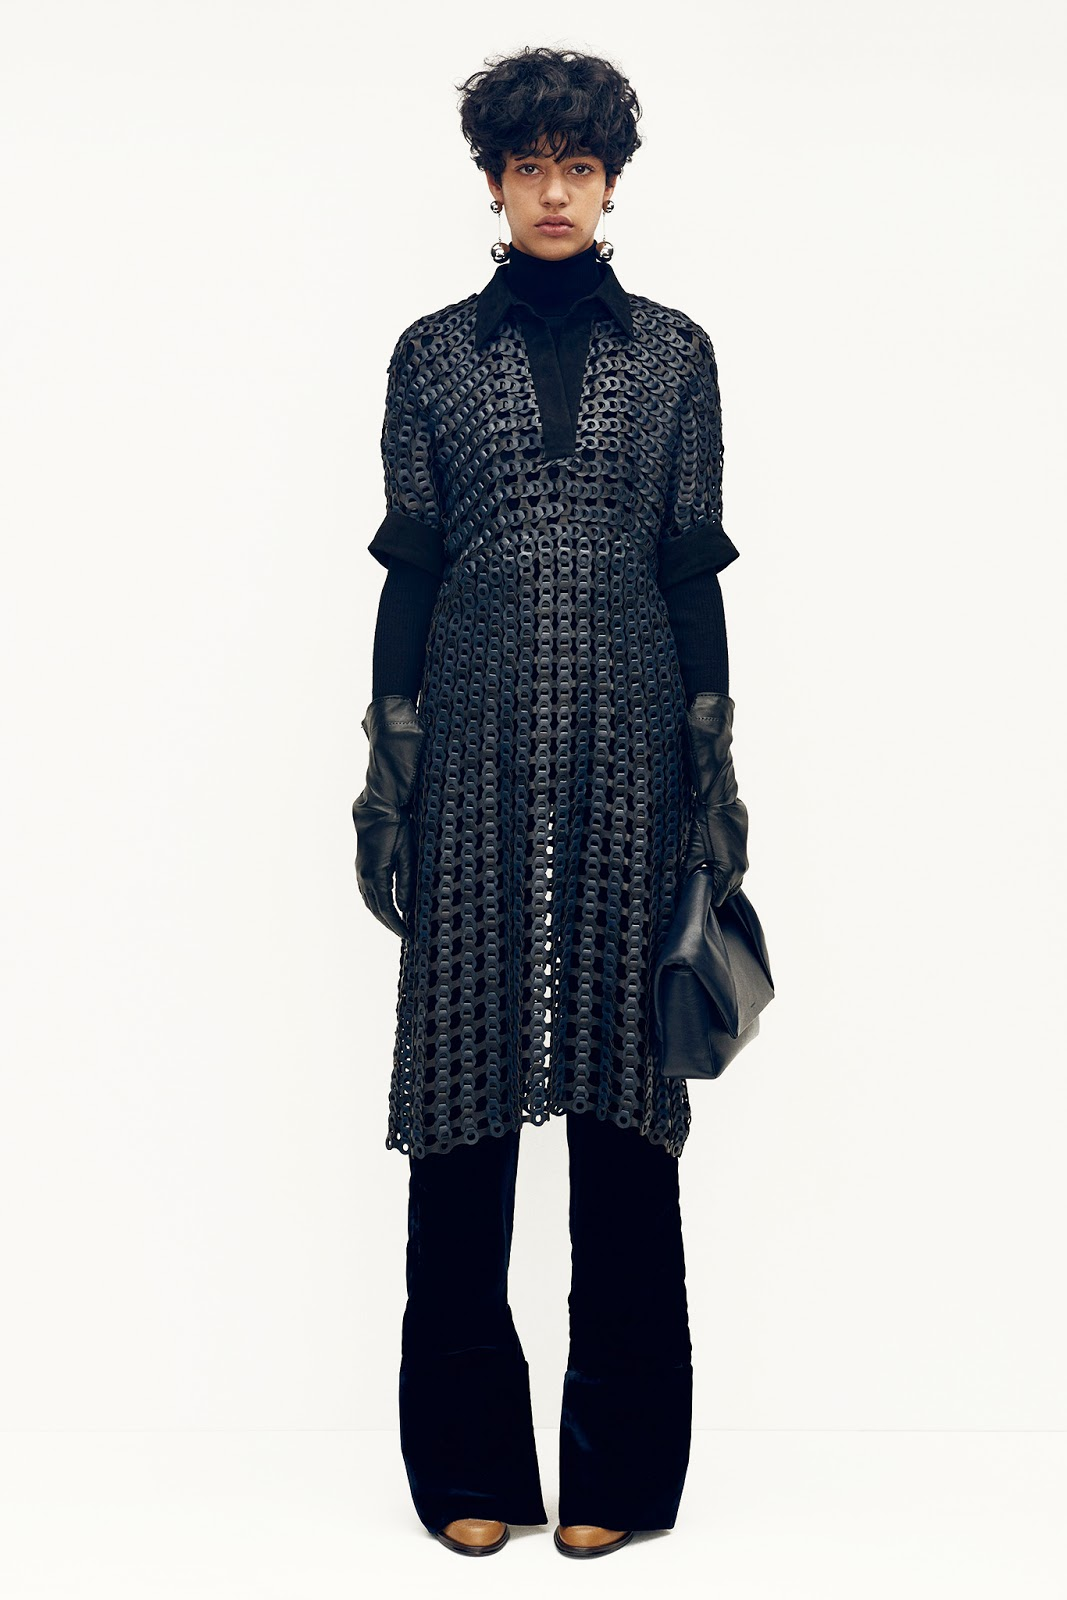 Damaris Goddrie by Scott Trindle | J.W. Anderson Pre-Fall 2015